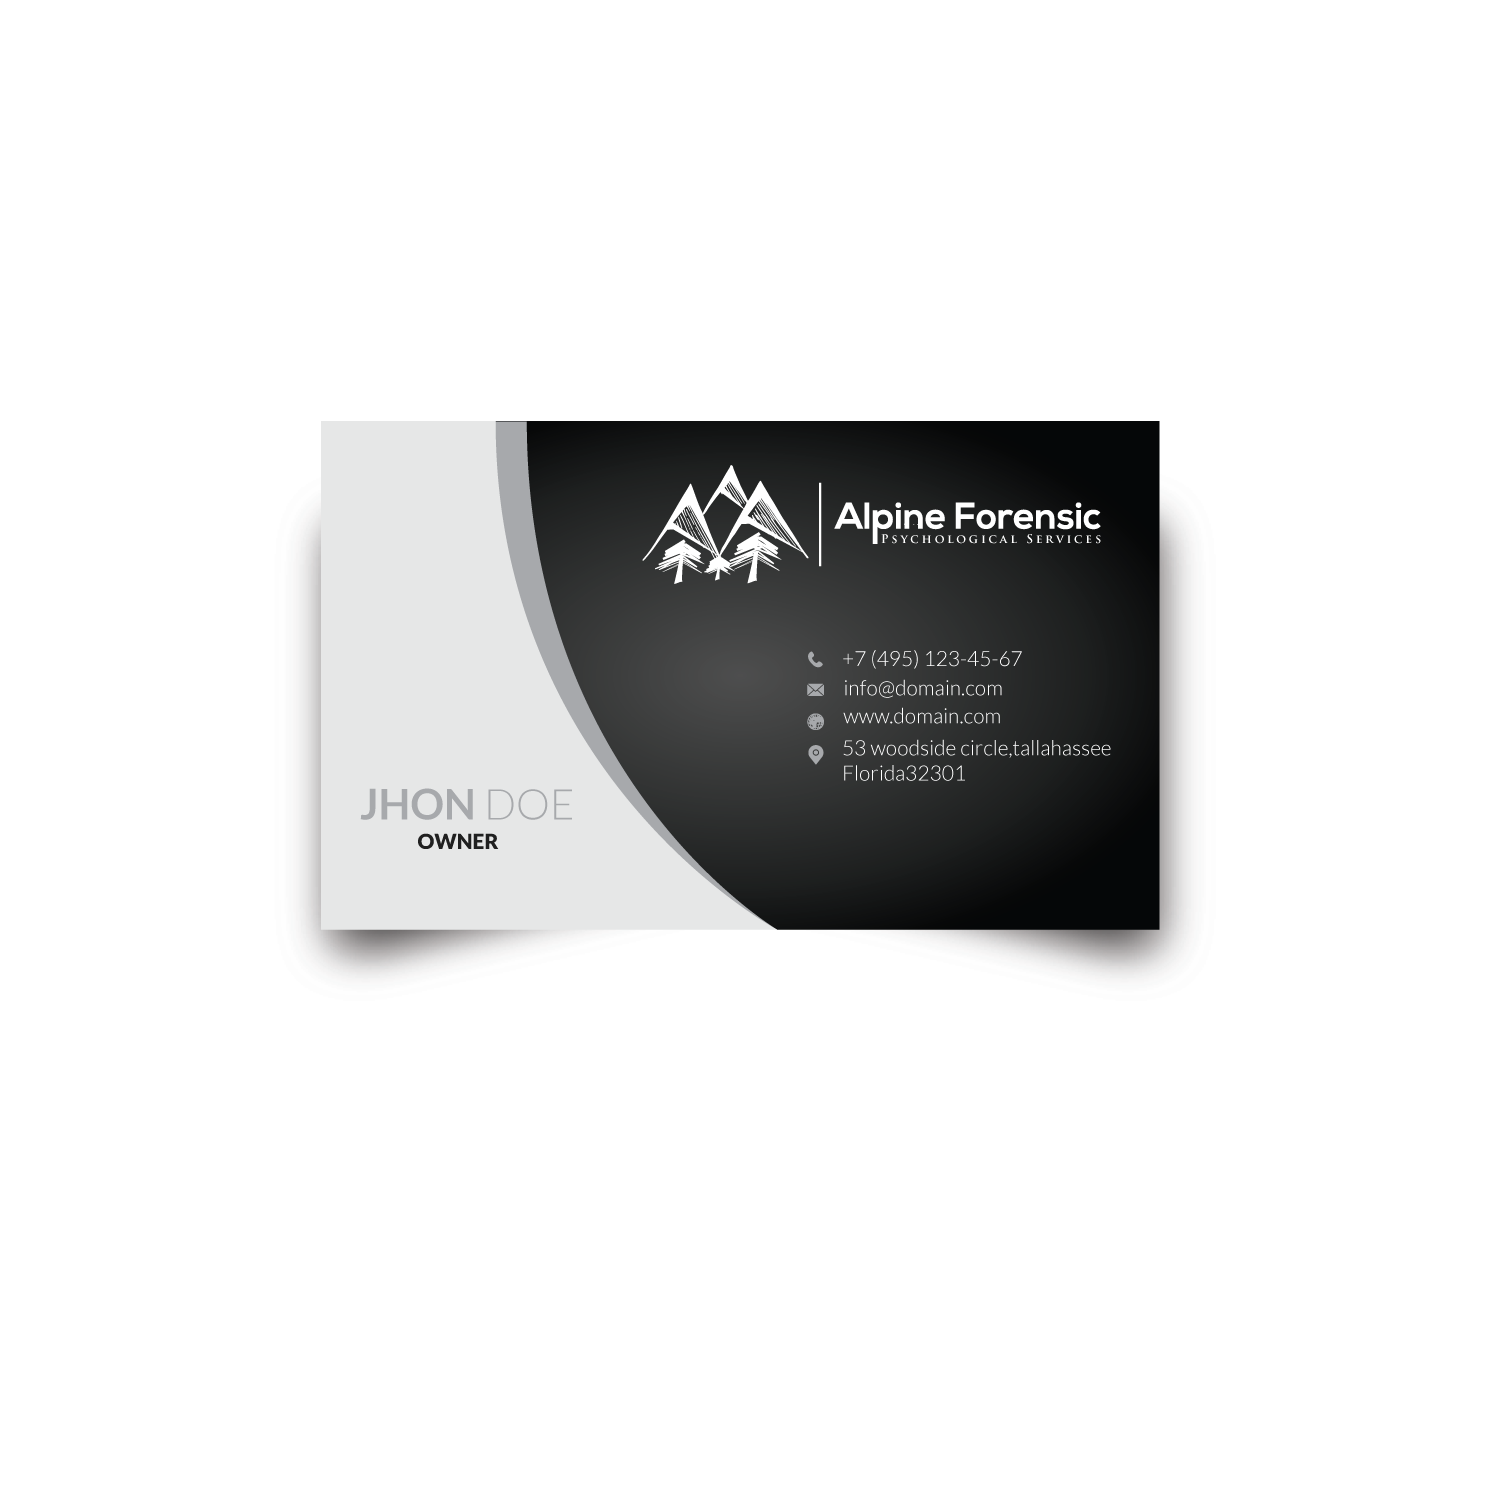 Serious professional medical business card design for a company by business card design by nuwanscreation for this project design 18225130 colourmoves